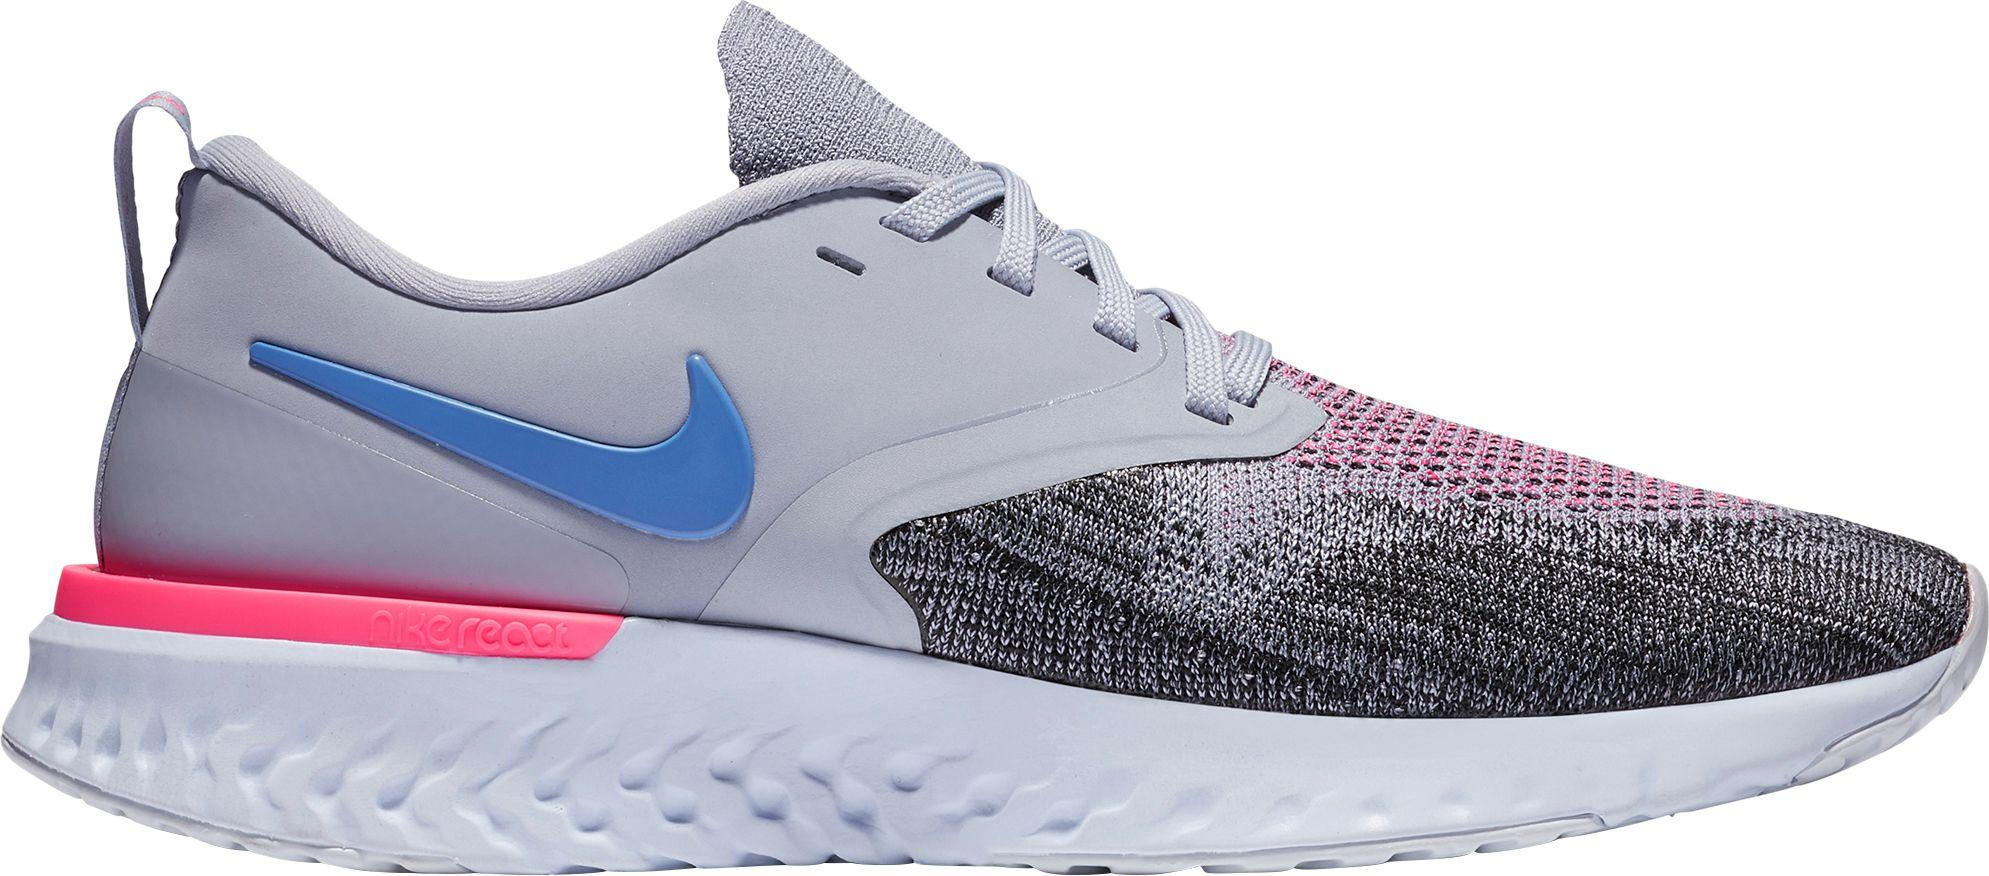 e55a7dc9ff57c Nike. Women s Odyssey React Flyknit 2 Running Shoes